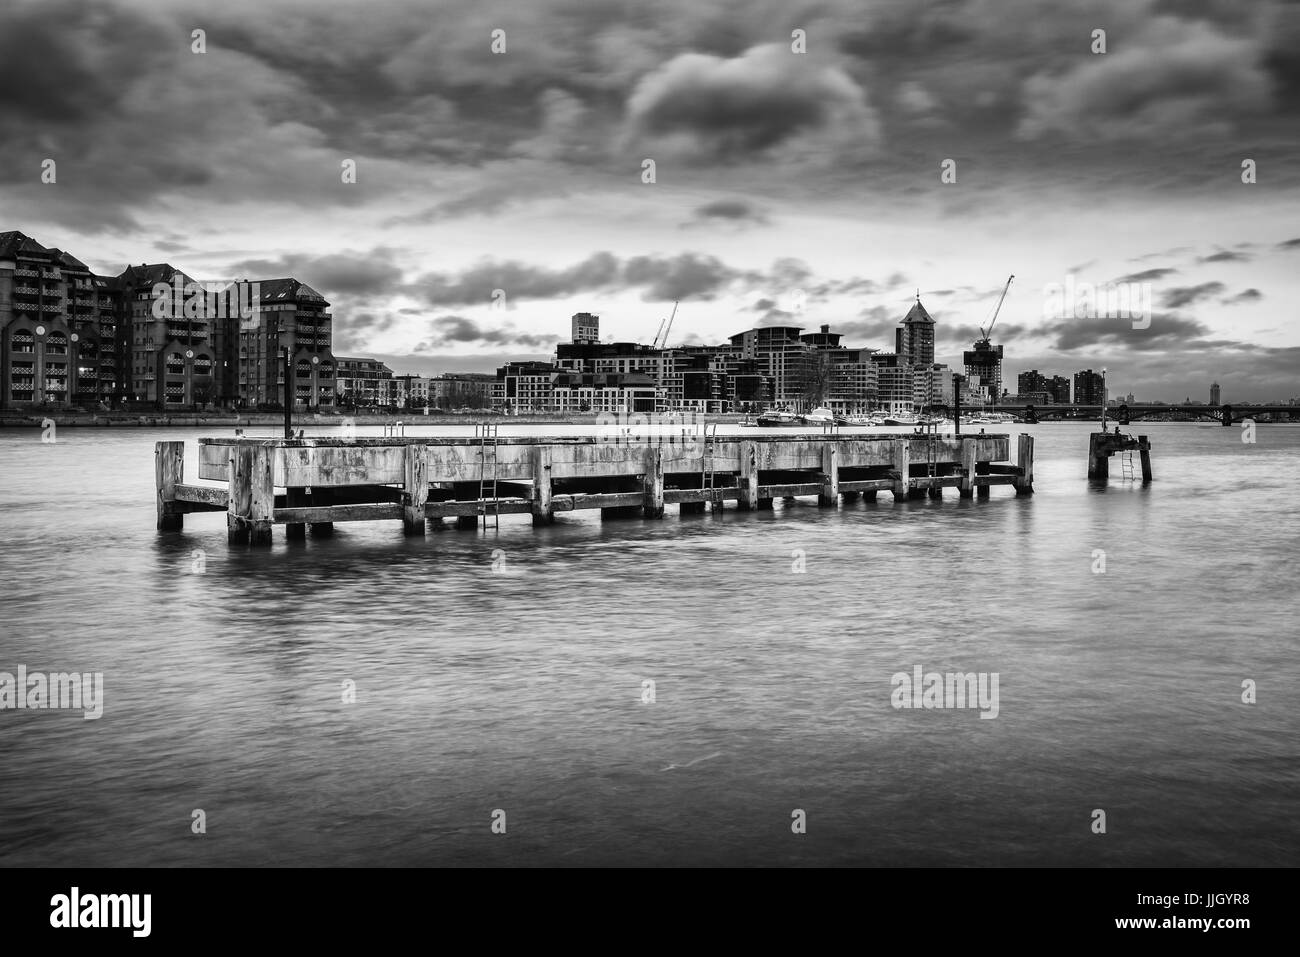 Disused Structure in River Thames (Black and White) - Stock Image